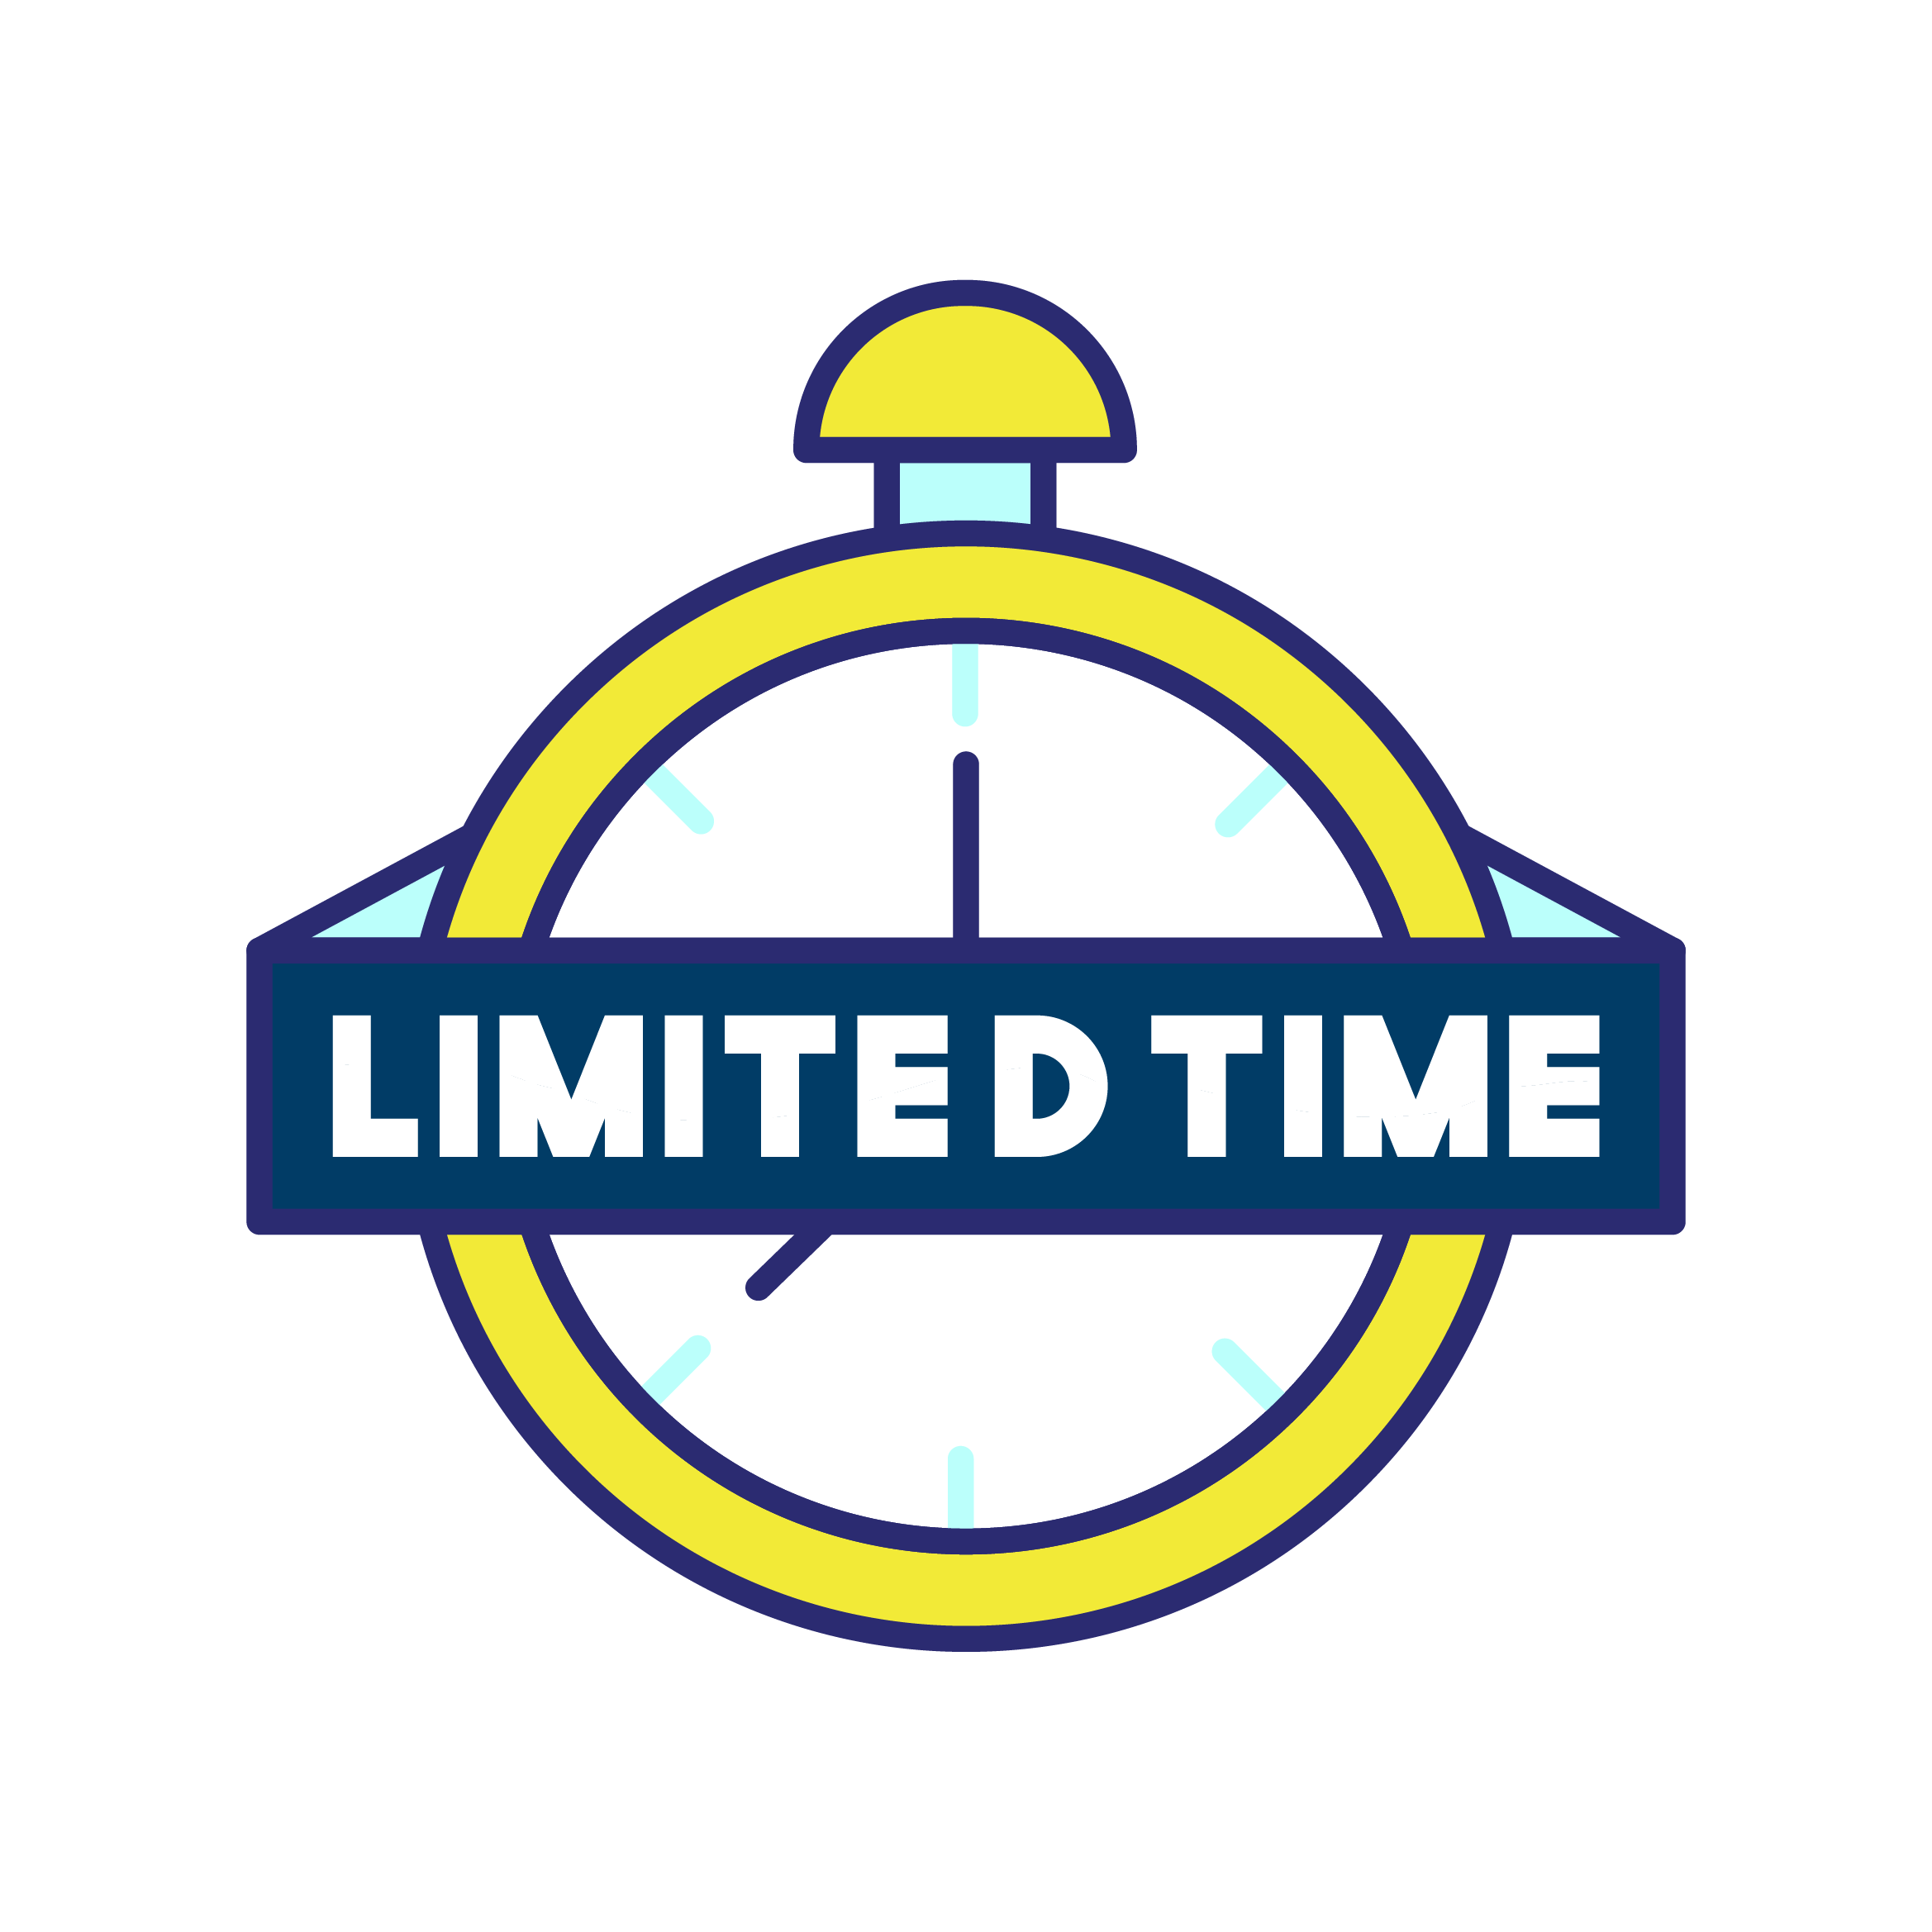 Limited Time Product